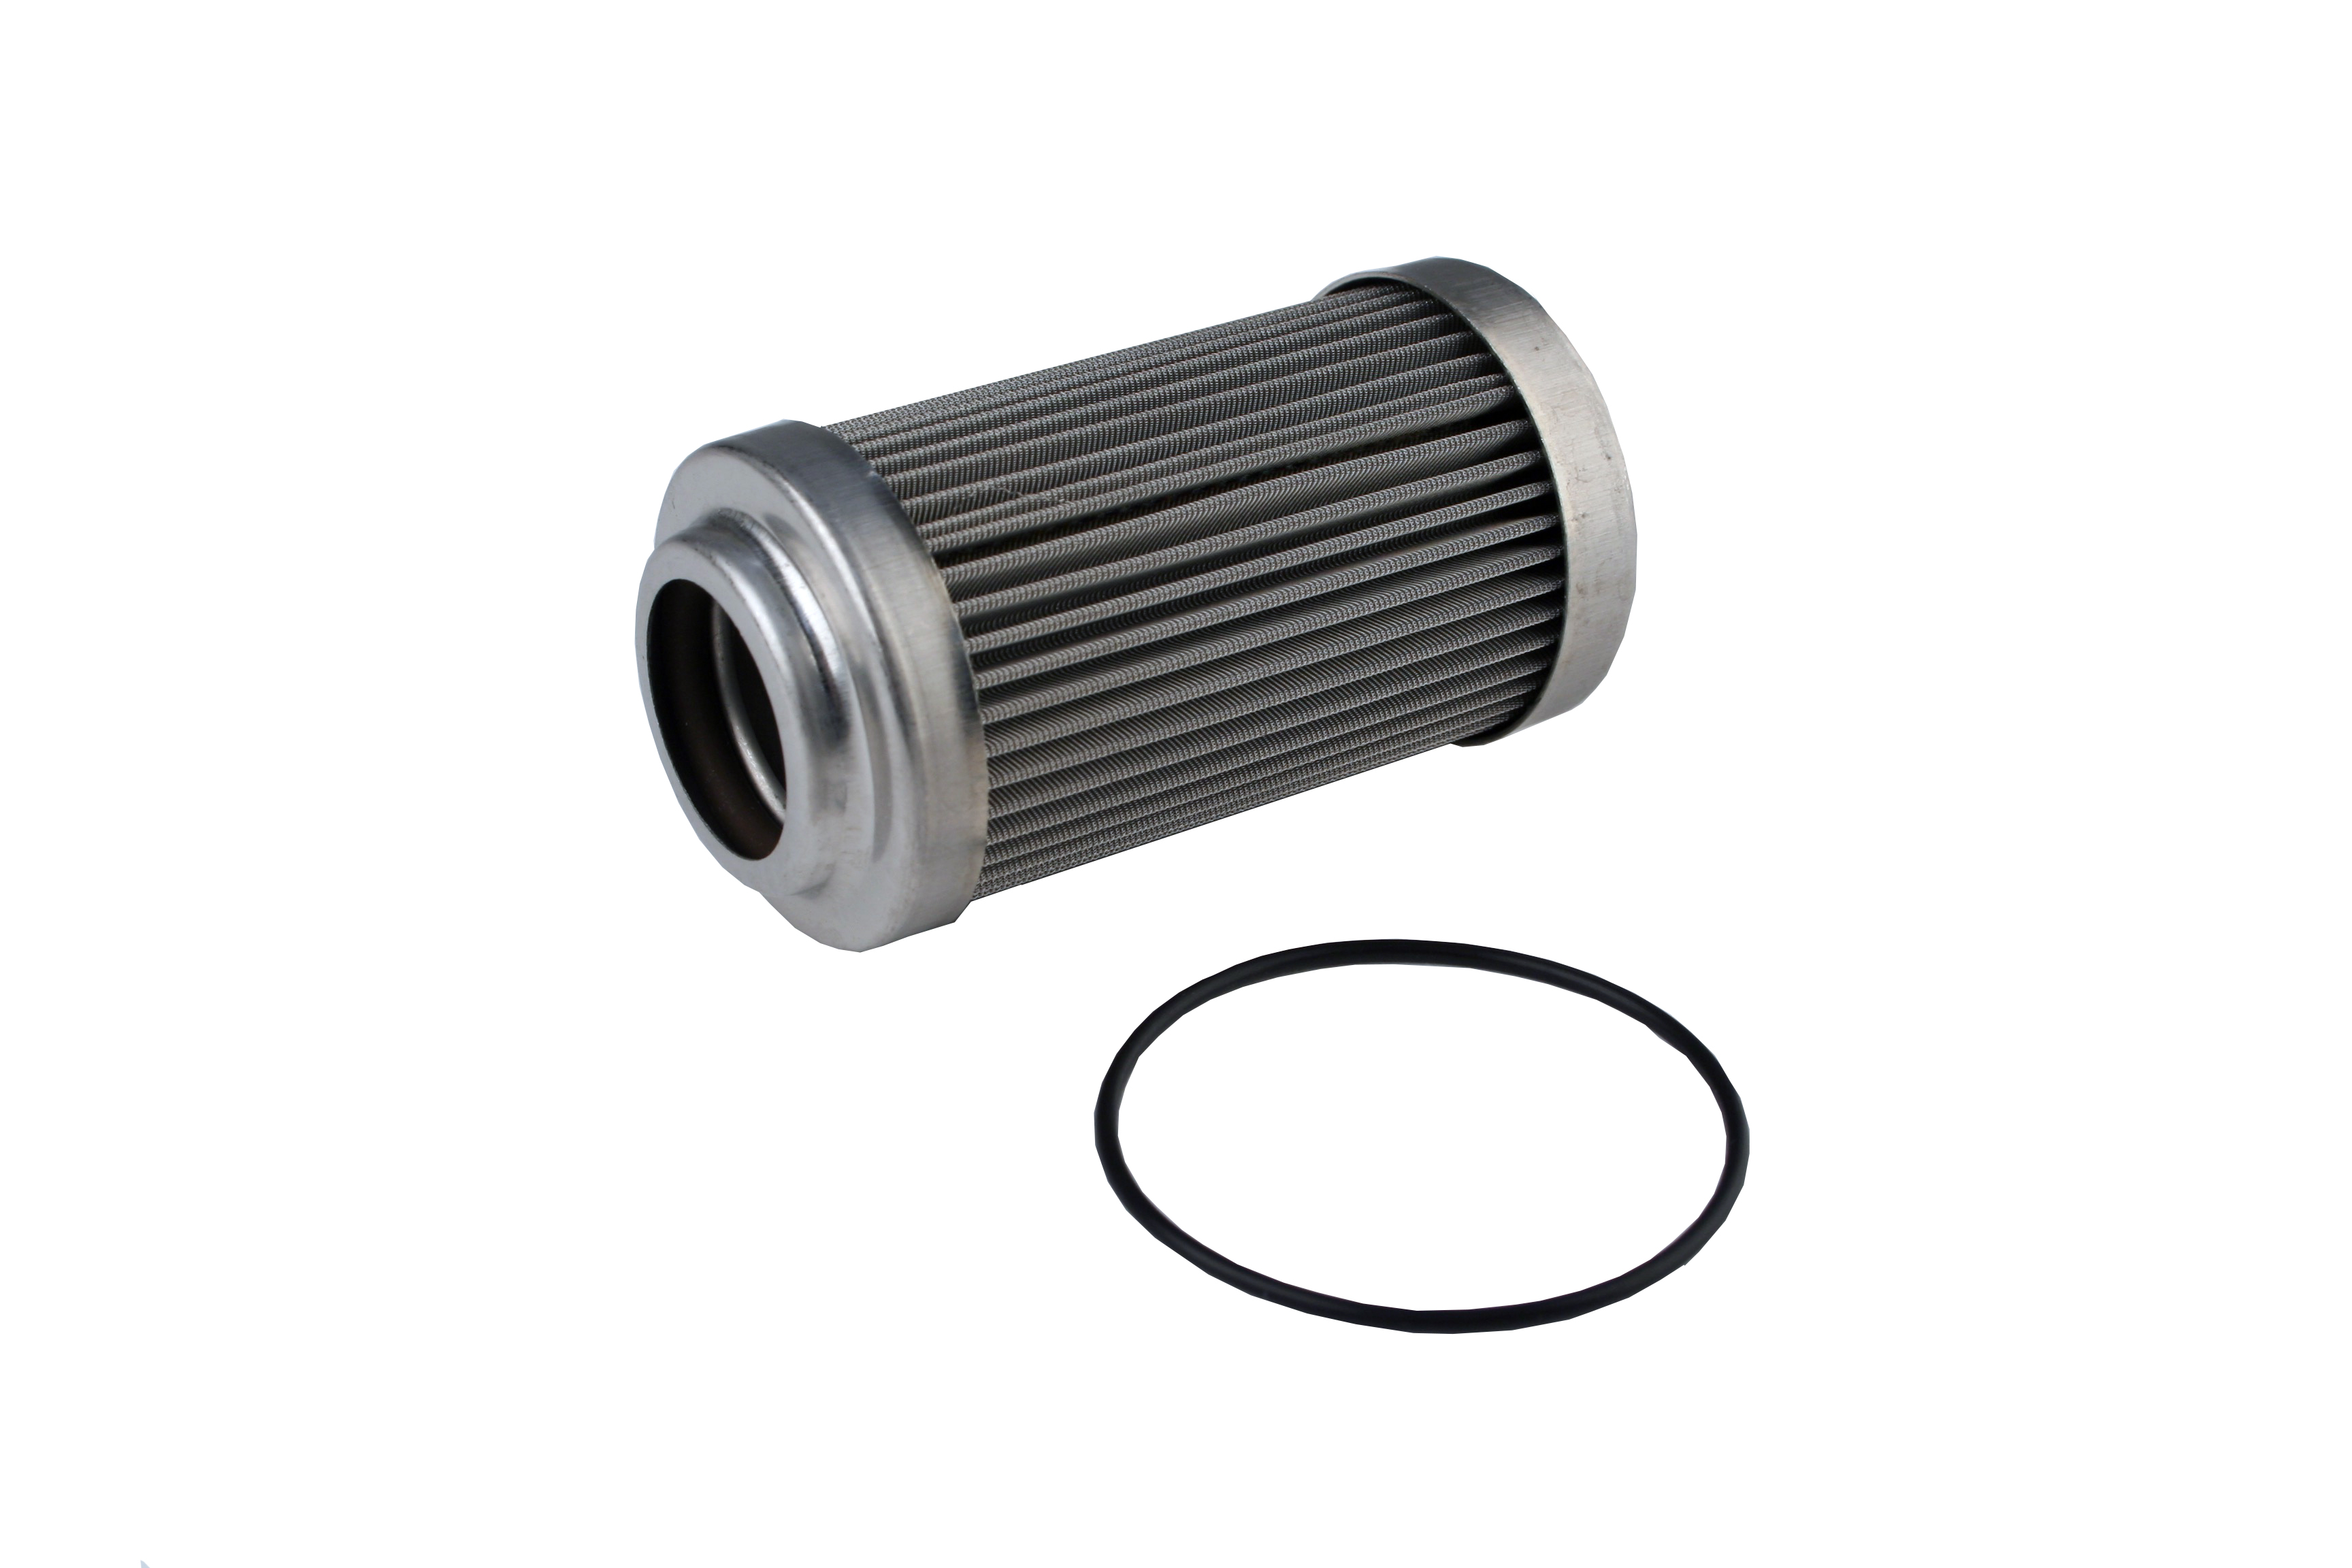 40 m stainless element orb 10 filter housings for Stainless steel elements